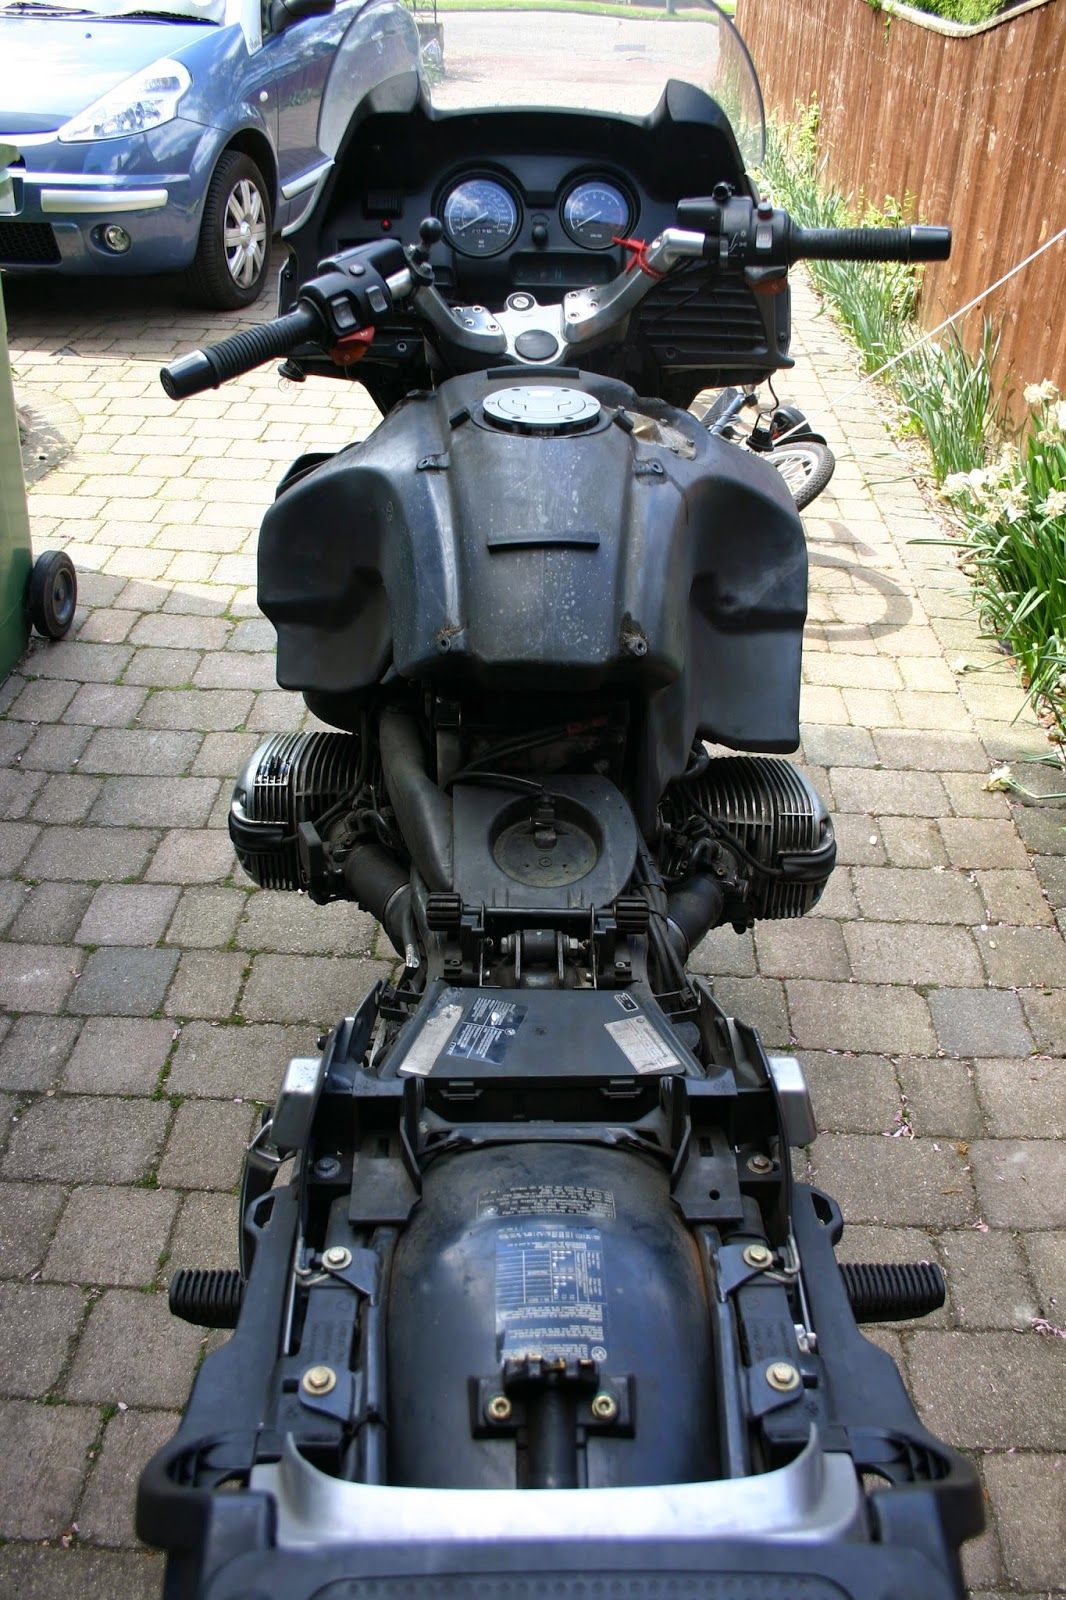 bmw r1150rt undressed bmw r1200rt bmw motorcycles custom motorcycles motorcycle bike motorbikes [ 1066 x 1600 Pixel ]